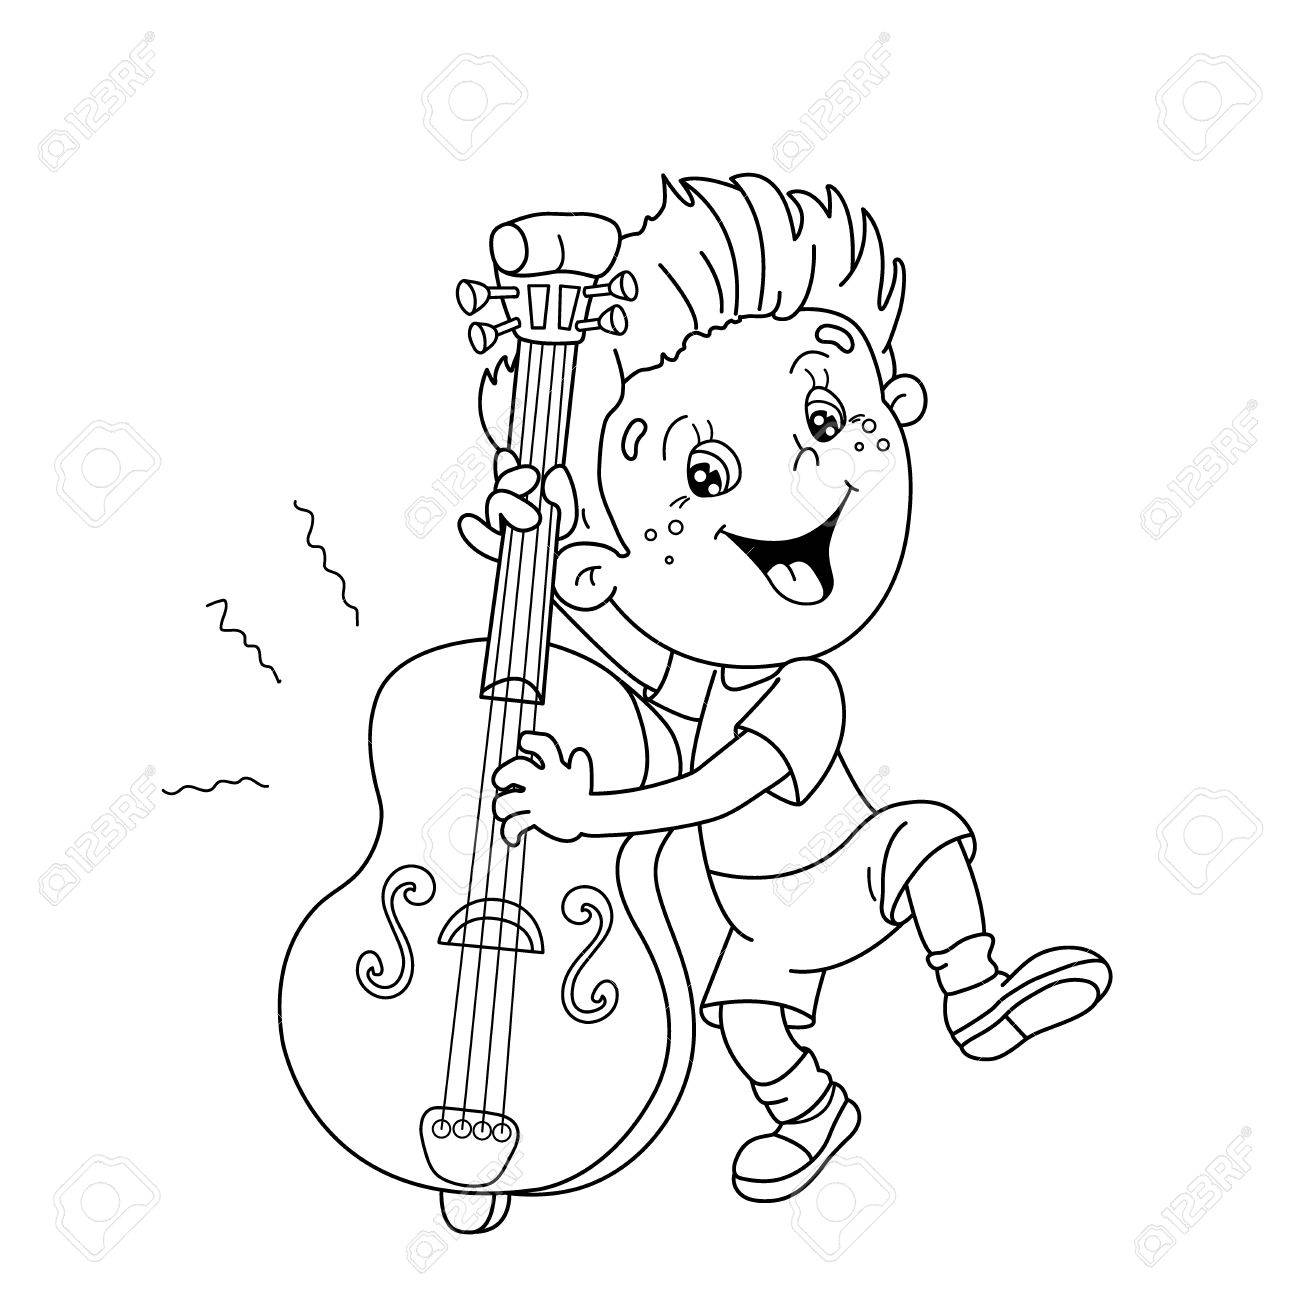 Coloring Page Outline Of Cartoon Boy Playing The Cello Musical